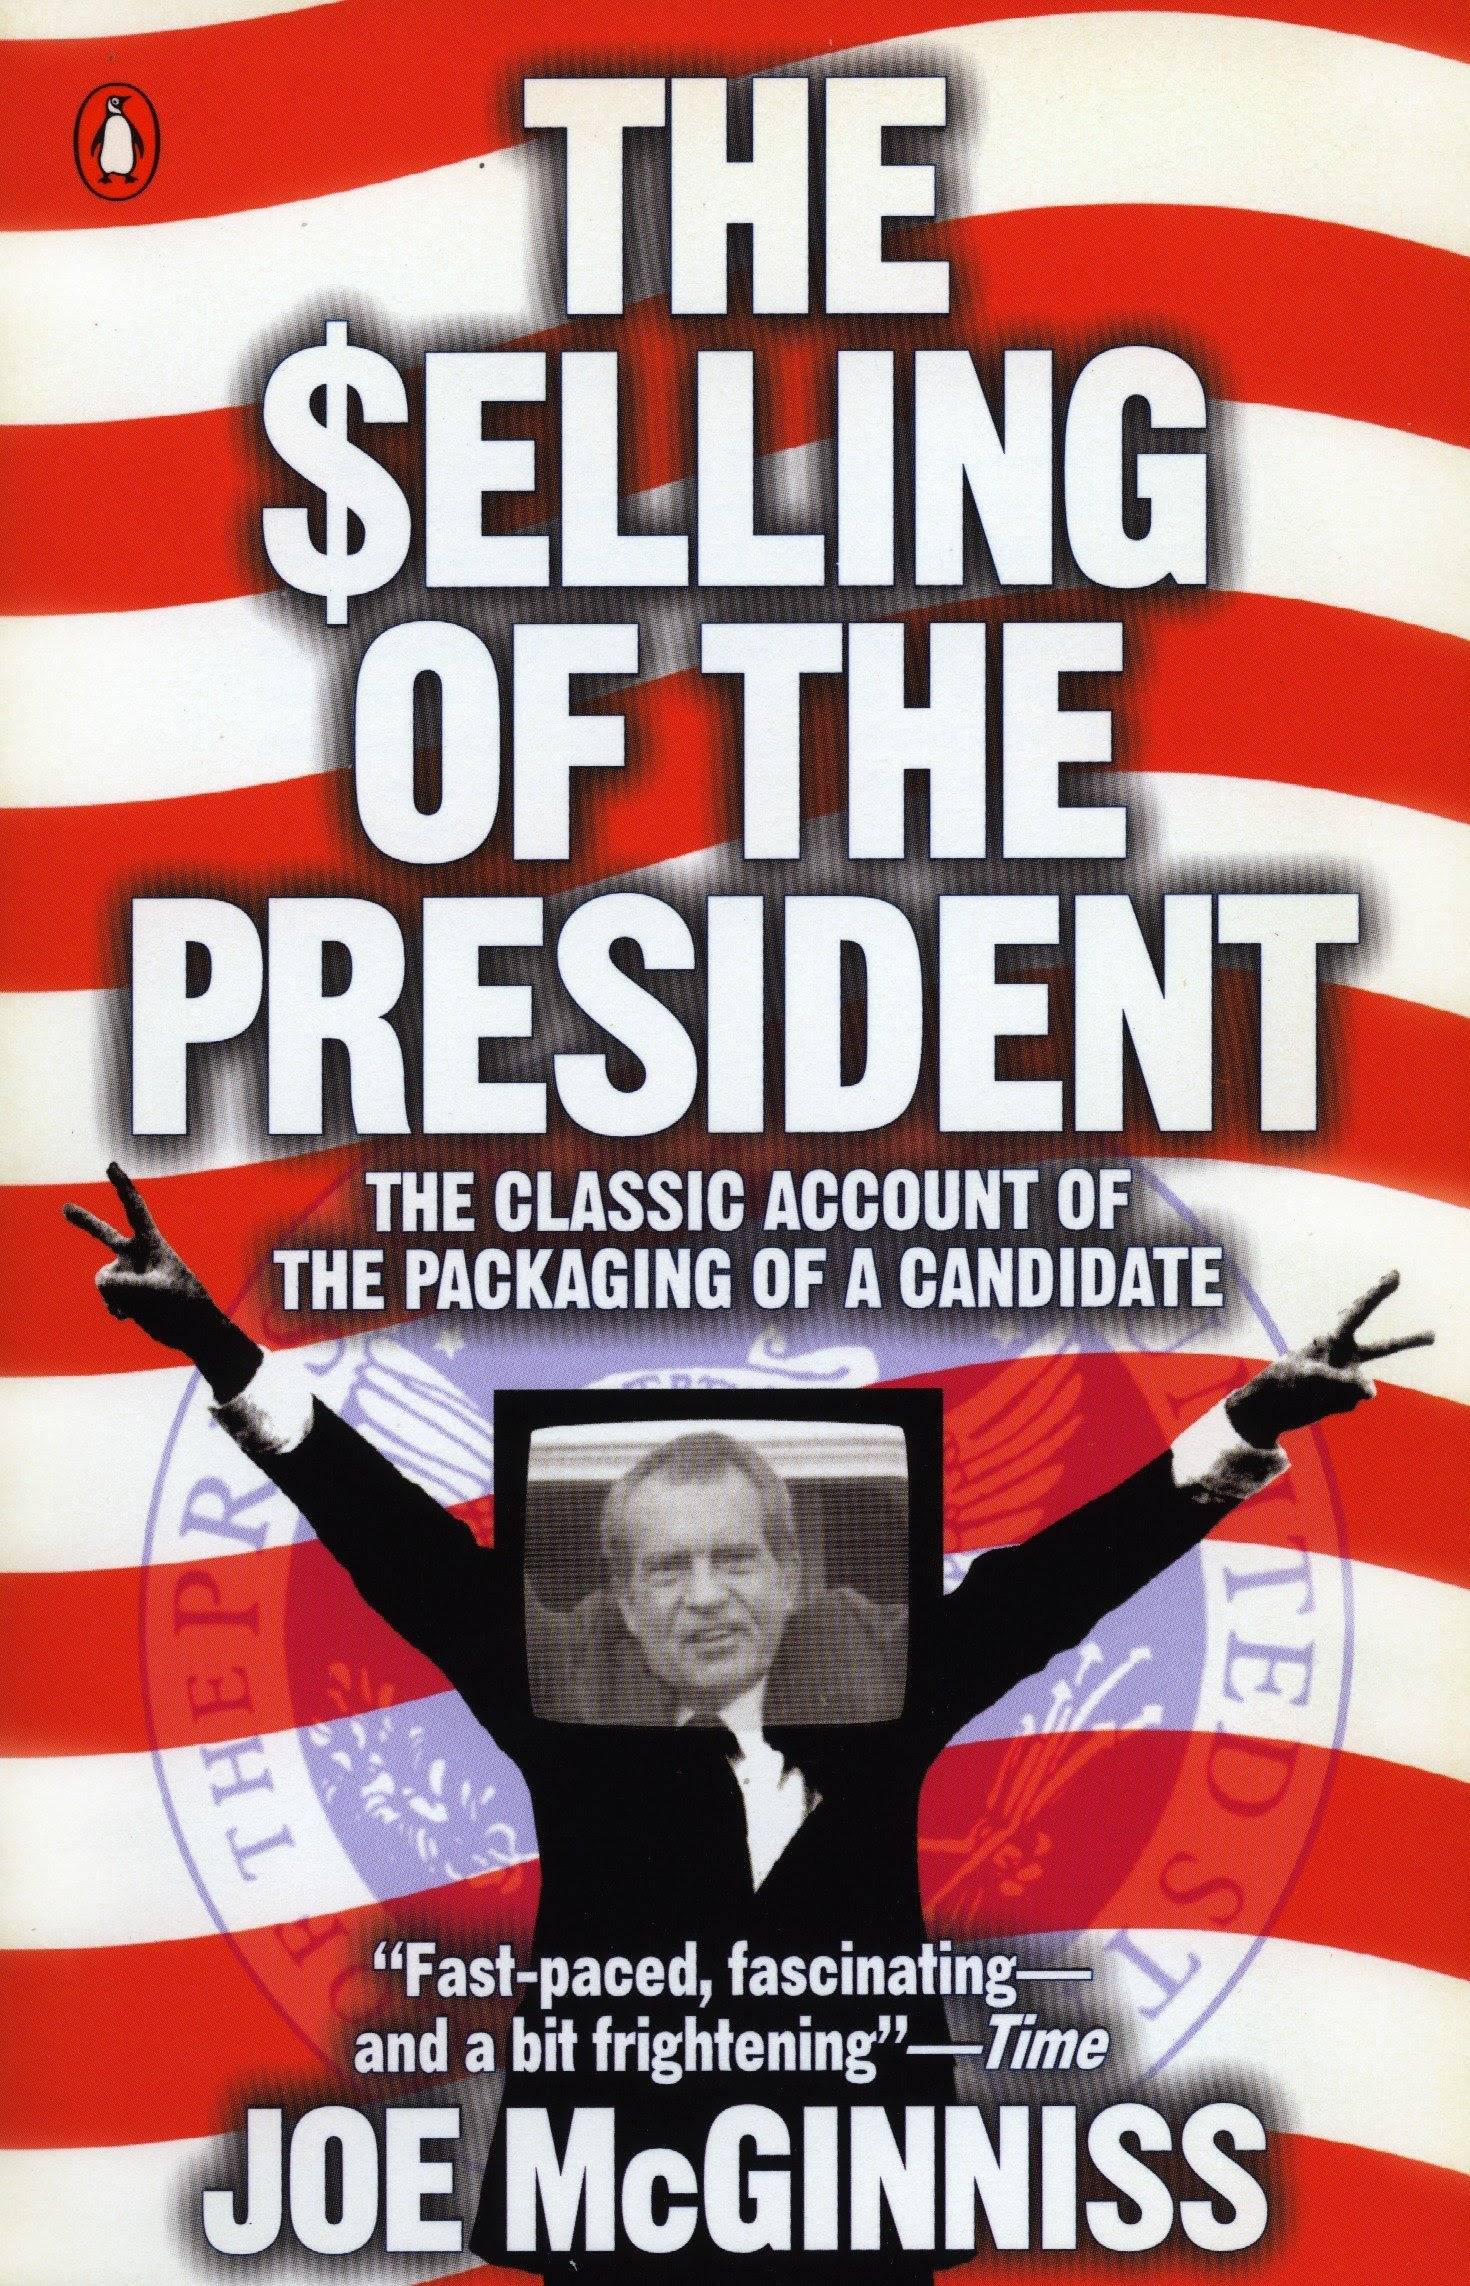 The Selling of the President: The Classical Account of the Packaging of a Candidate: McGinniss, Joe: 9780140112405: Amazon.com: Books